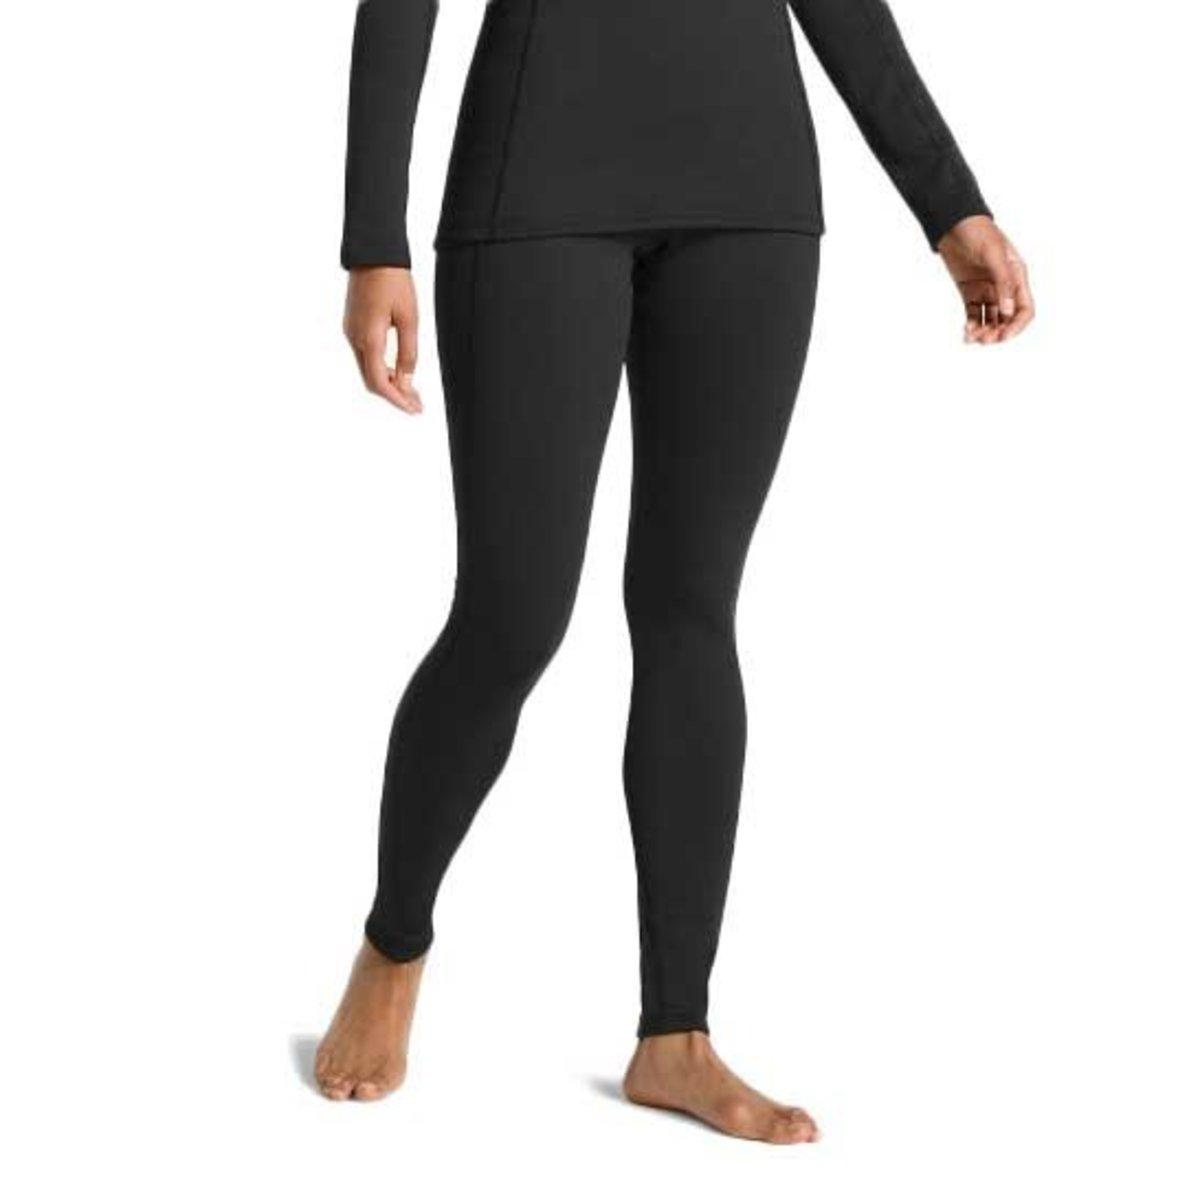 79d5b4d07 Lyst - The North Face Expedition Tights in Black - Save 57%